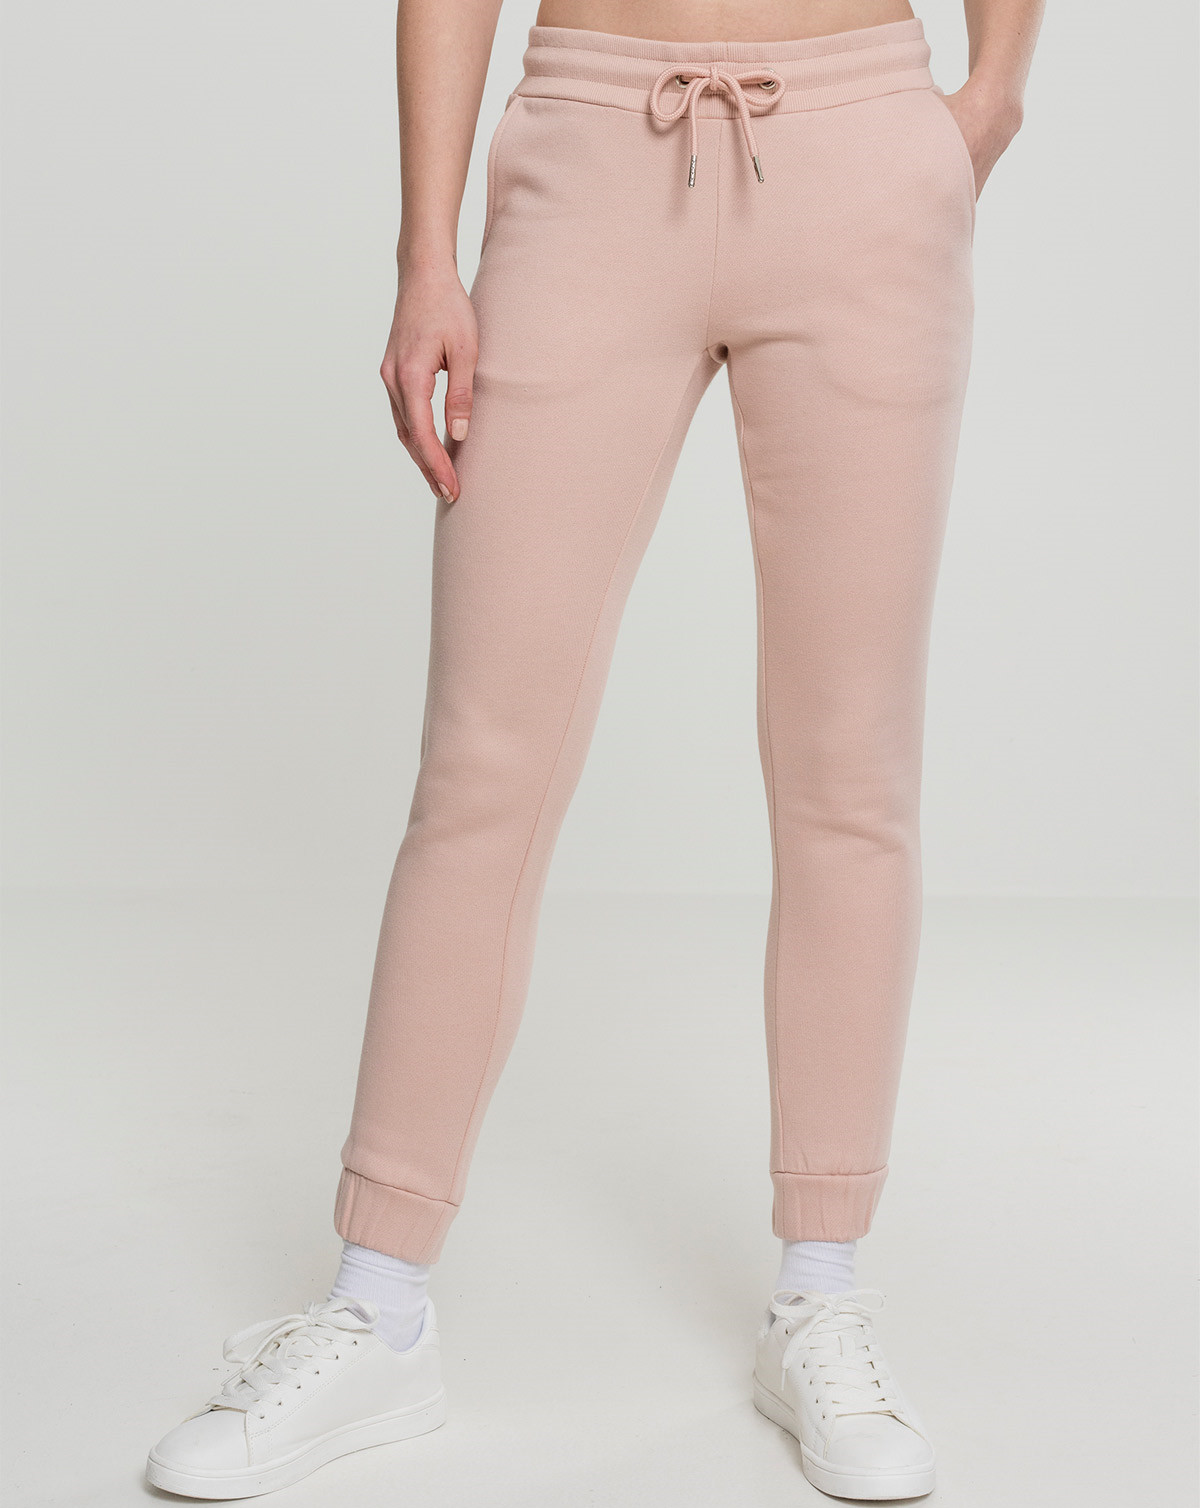 Urban Classics Ladies Sweatpants (Light Rose, XS)